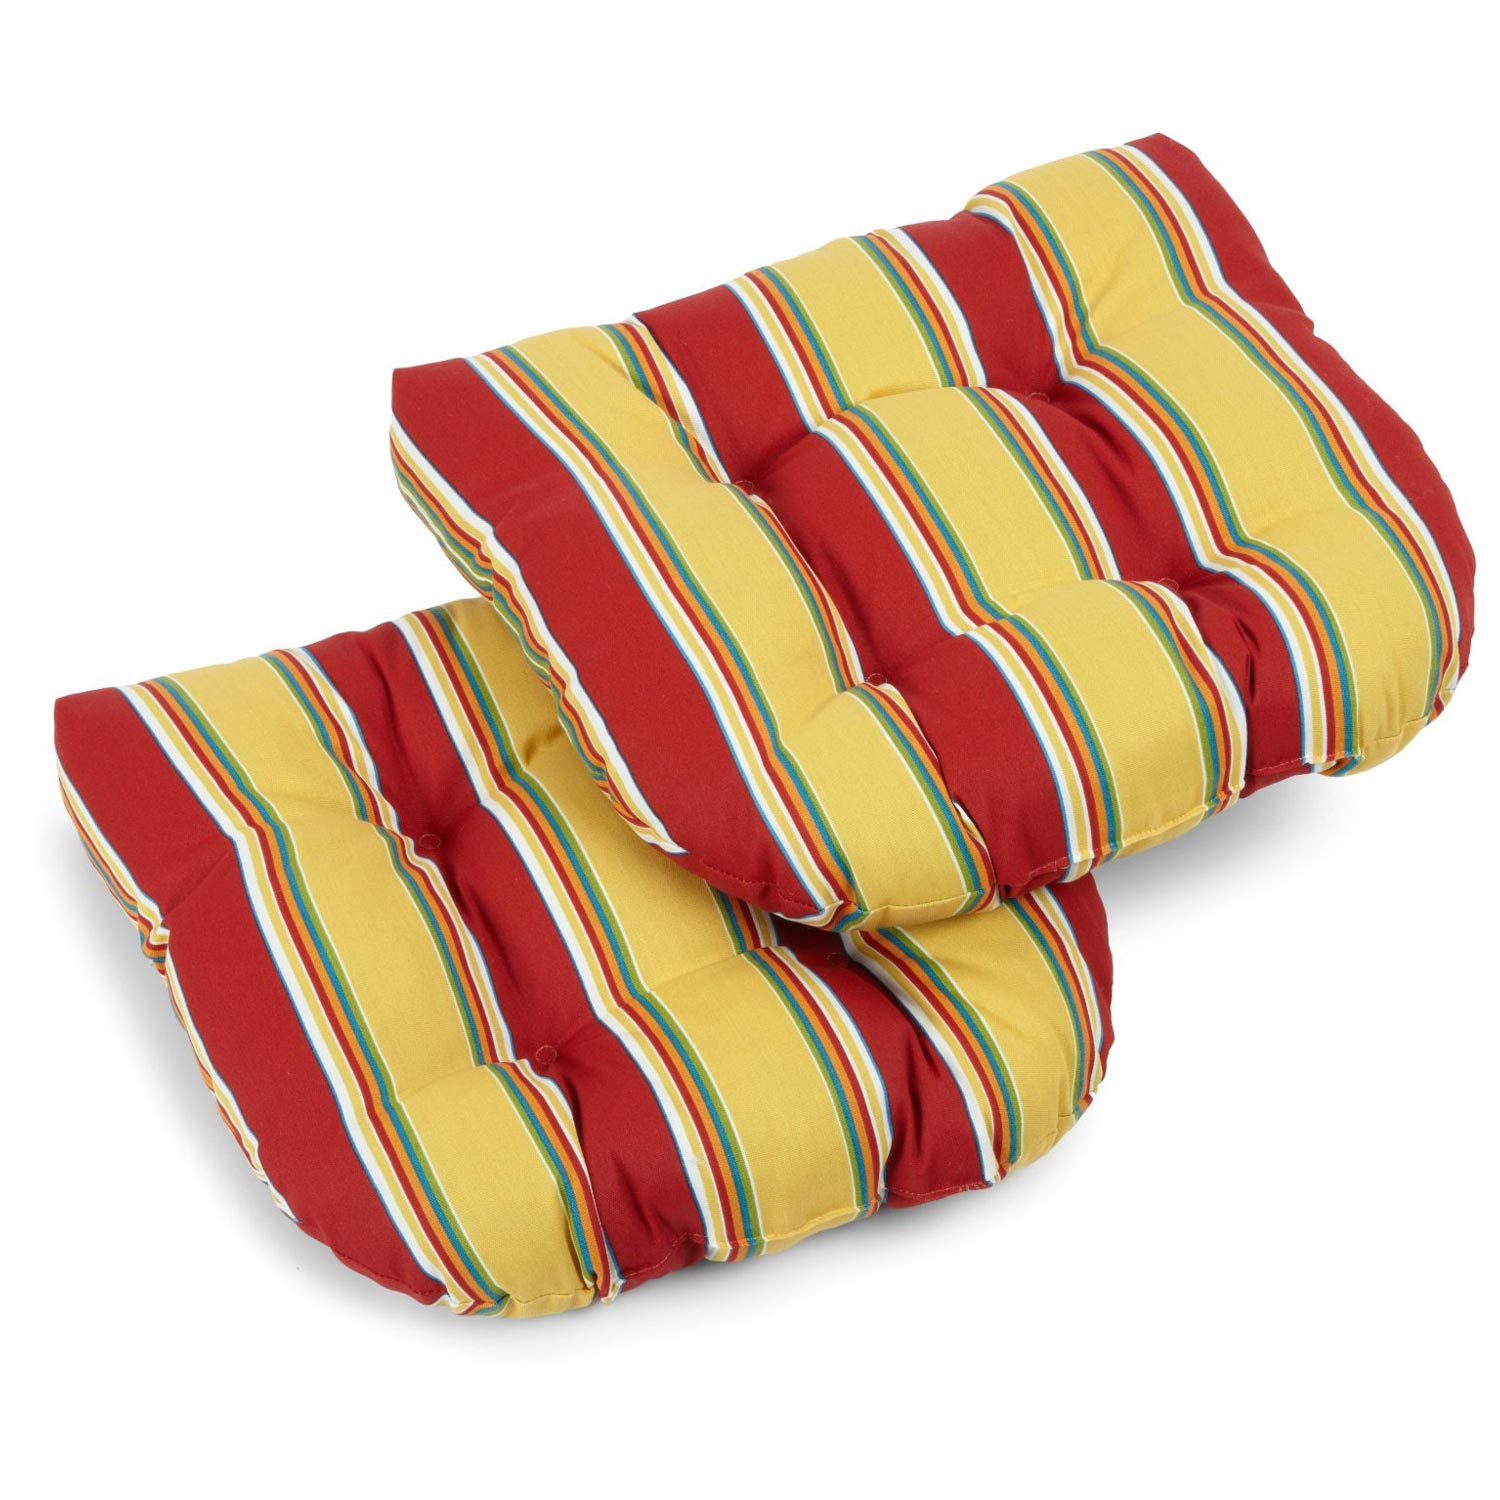 U-Shaped Patio Chair Cushion - All-Weather, Patterned (Set of 2)